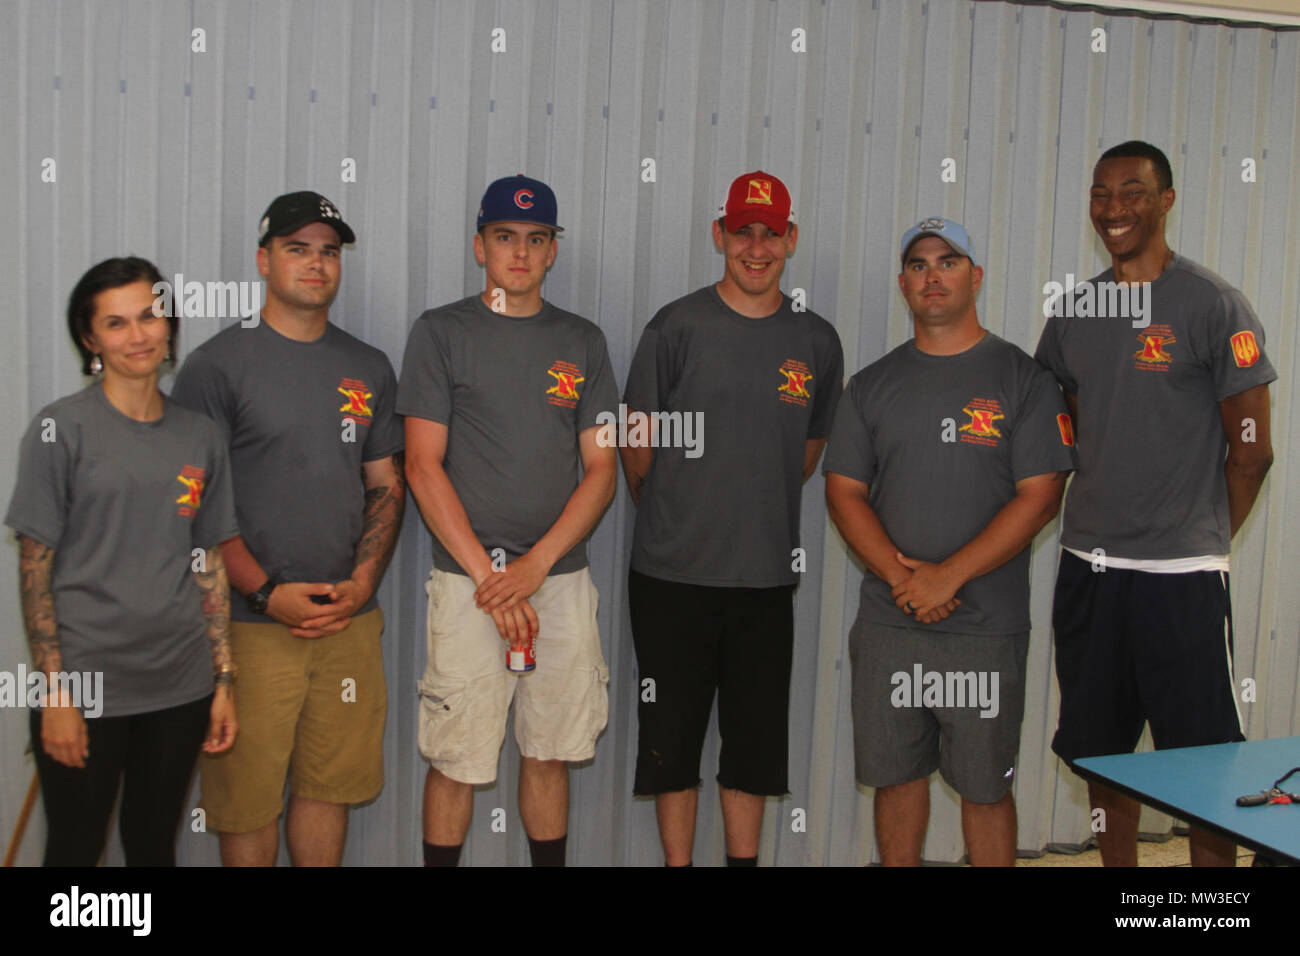 18th April Stock Photos Images Page 10 Alamy Ramayana Aero Tshirt Navy L Fayetteville Nc Soldiers Of The 3rd Battalion 27th Field Artillery Regiment Pause